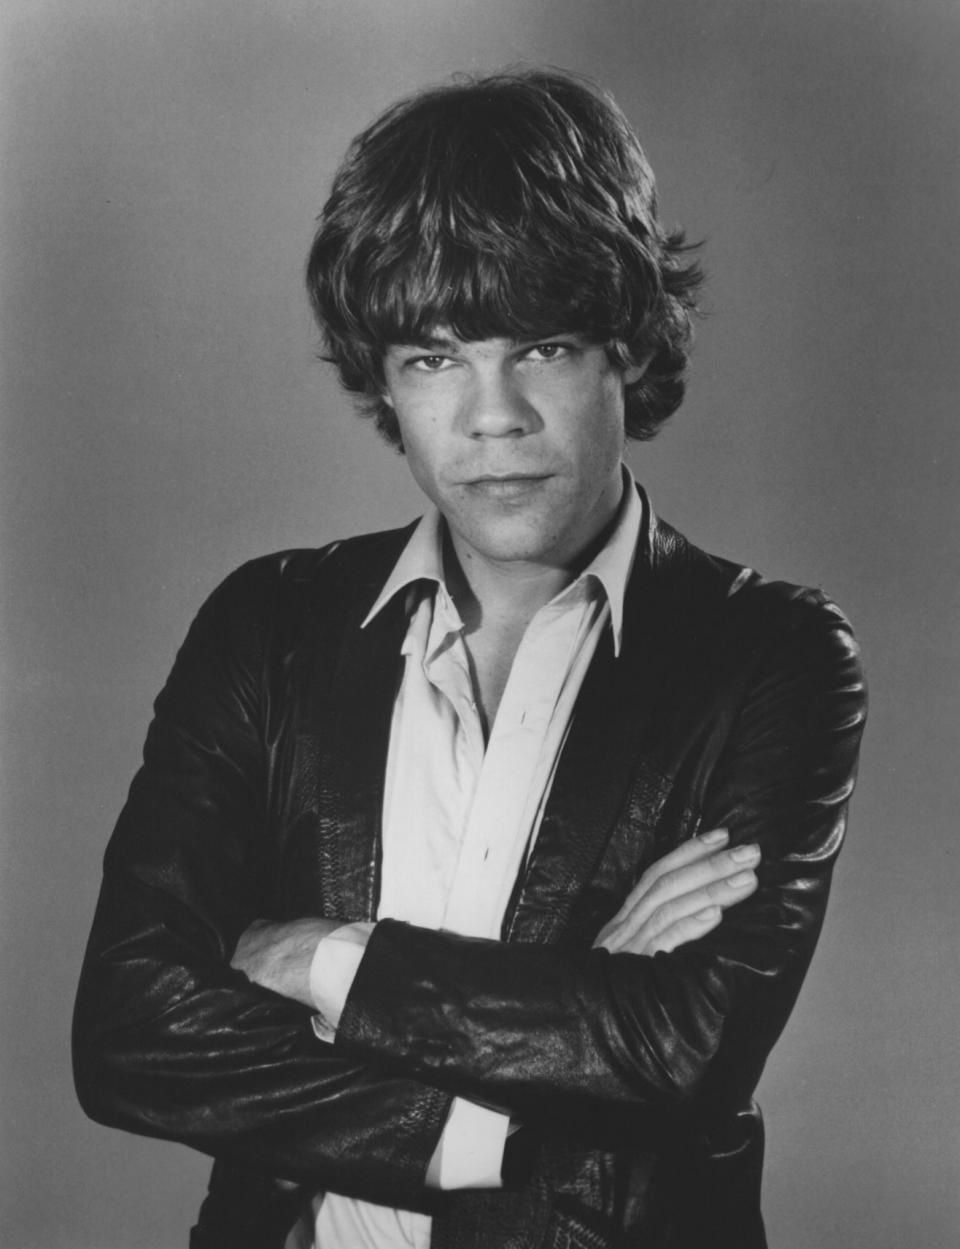 Happy birthday, David Johansen - Classic Rock Stars Birthdays